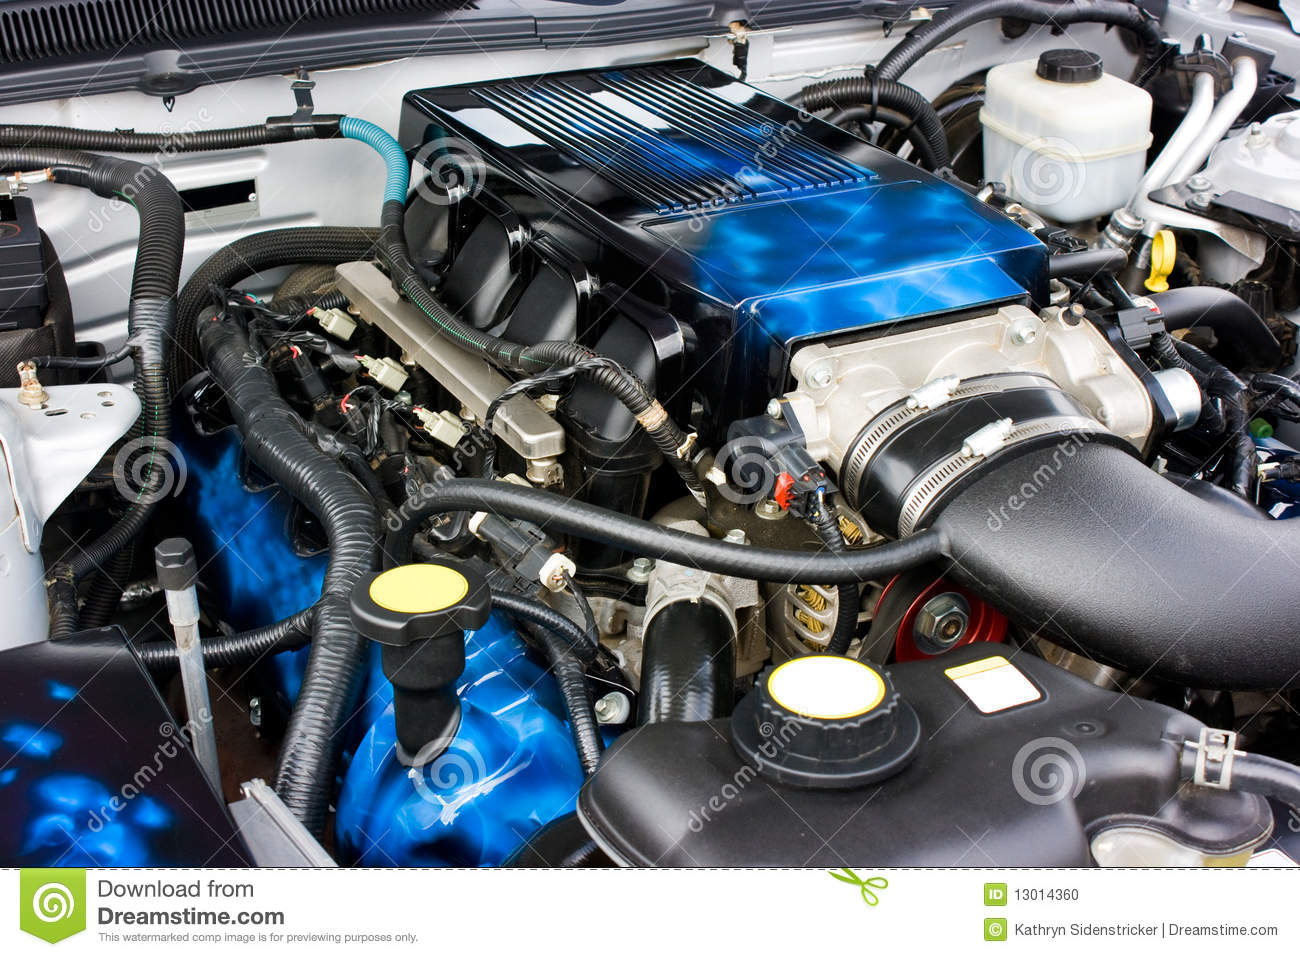 2009 Ford Mustang Saleen Engine Stock Photo